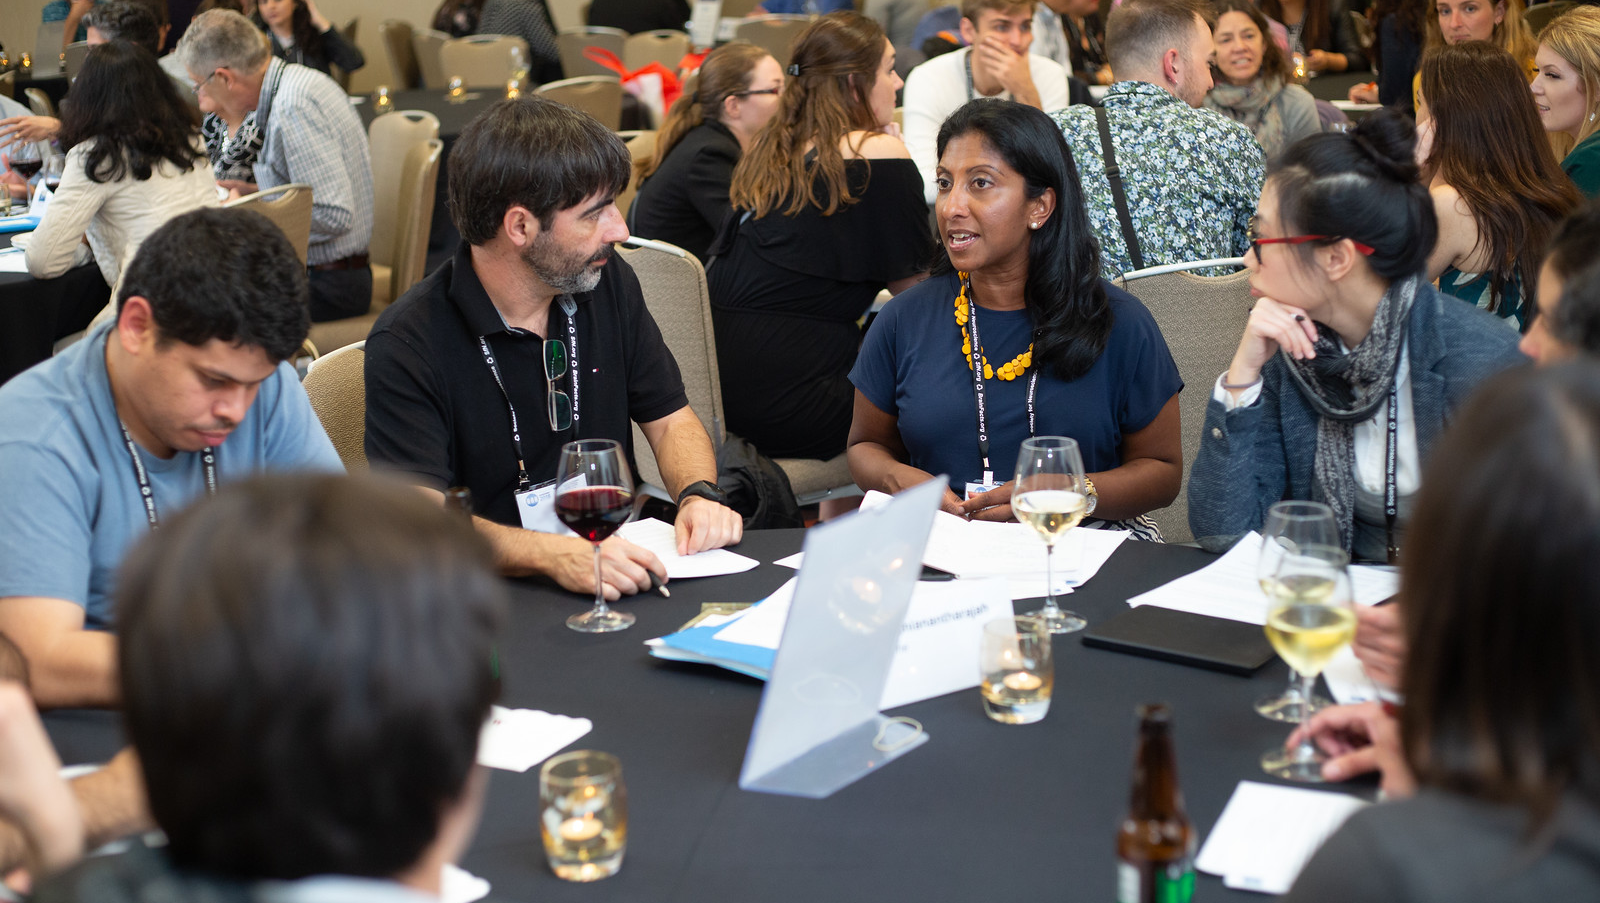 A discussion at one of the Neuroscience 2018 workshops.